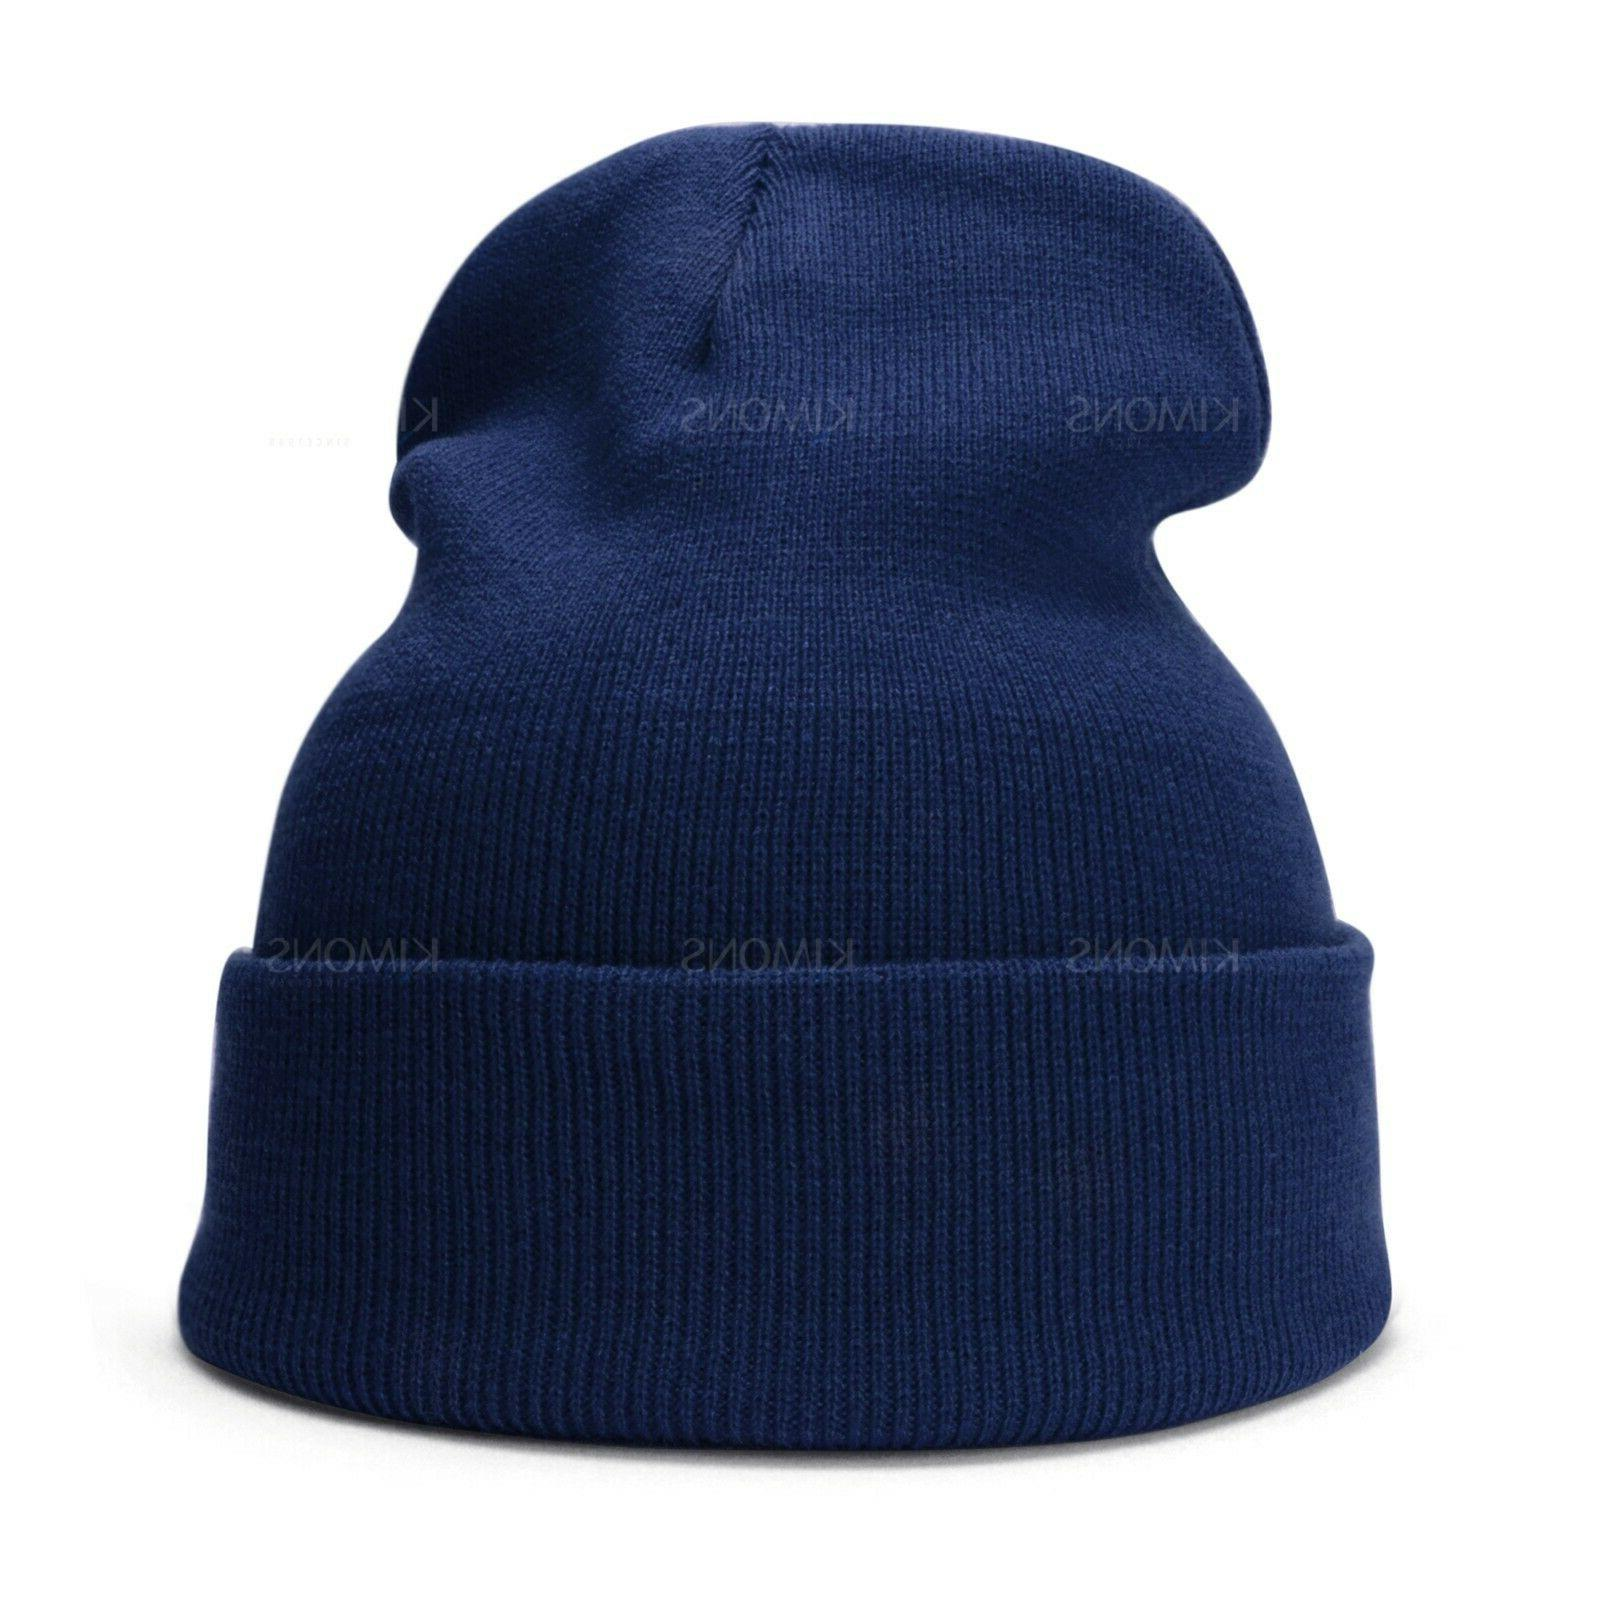 Beanie Winter Slouchy Ski Men Woman